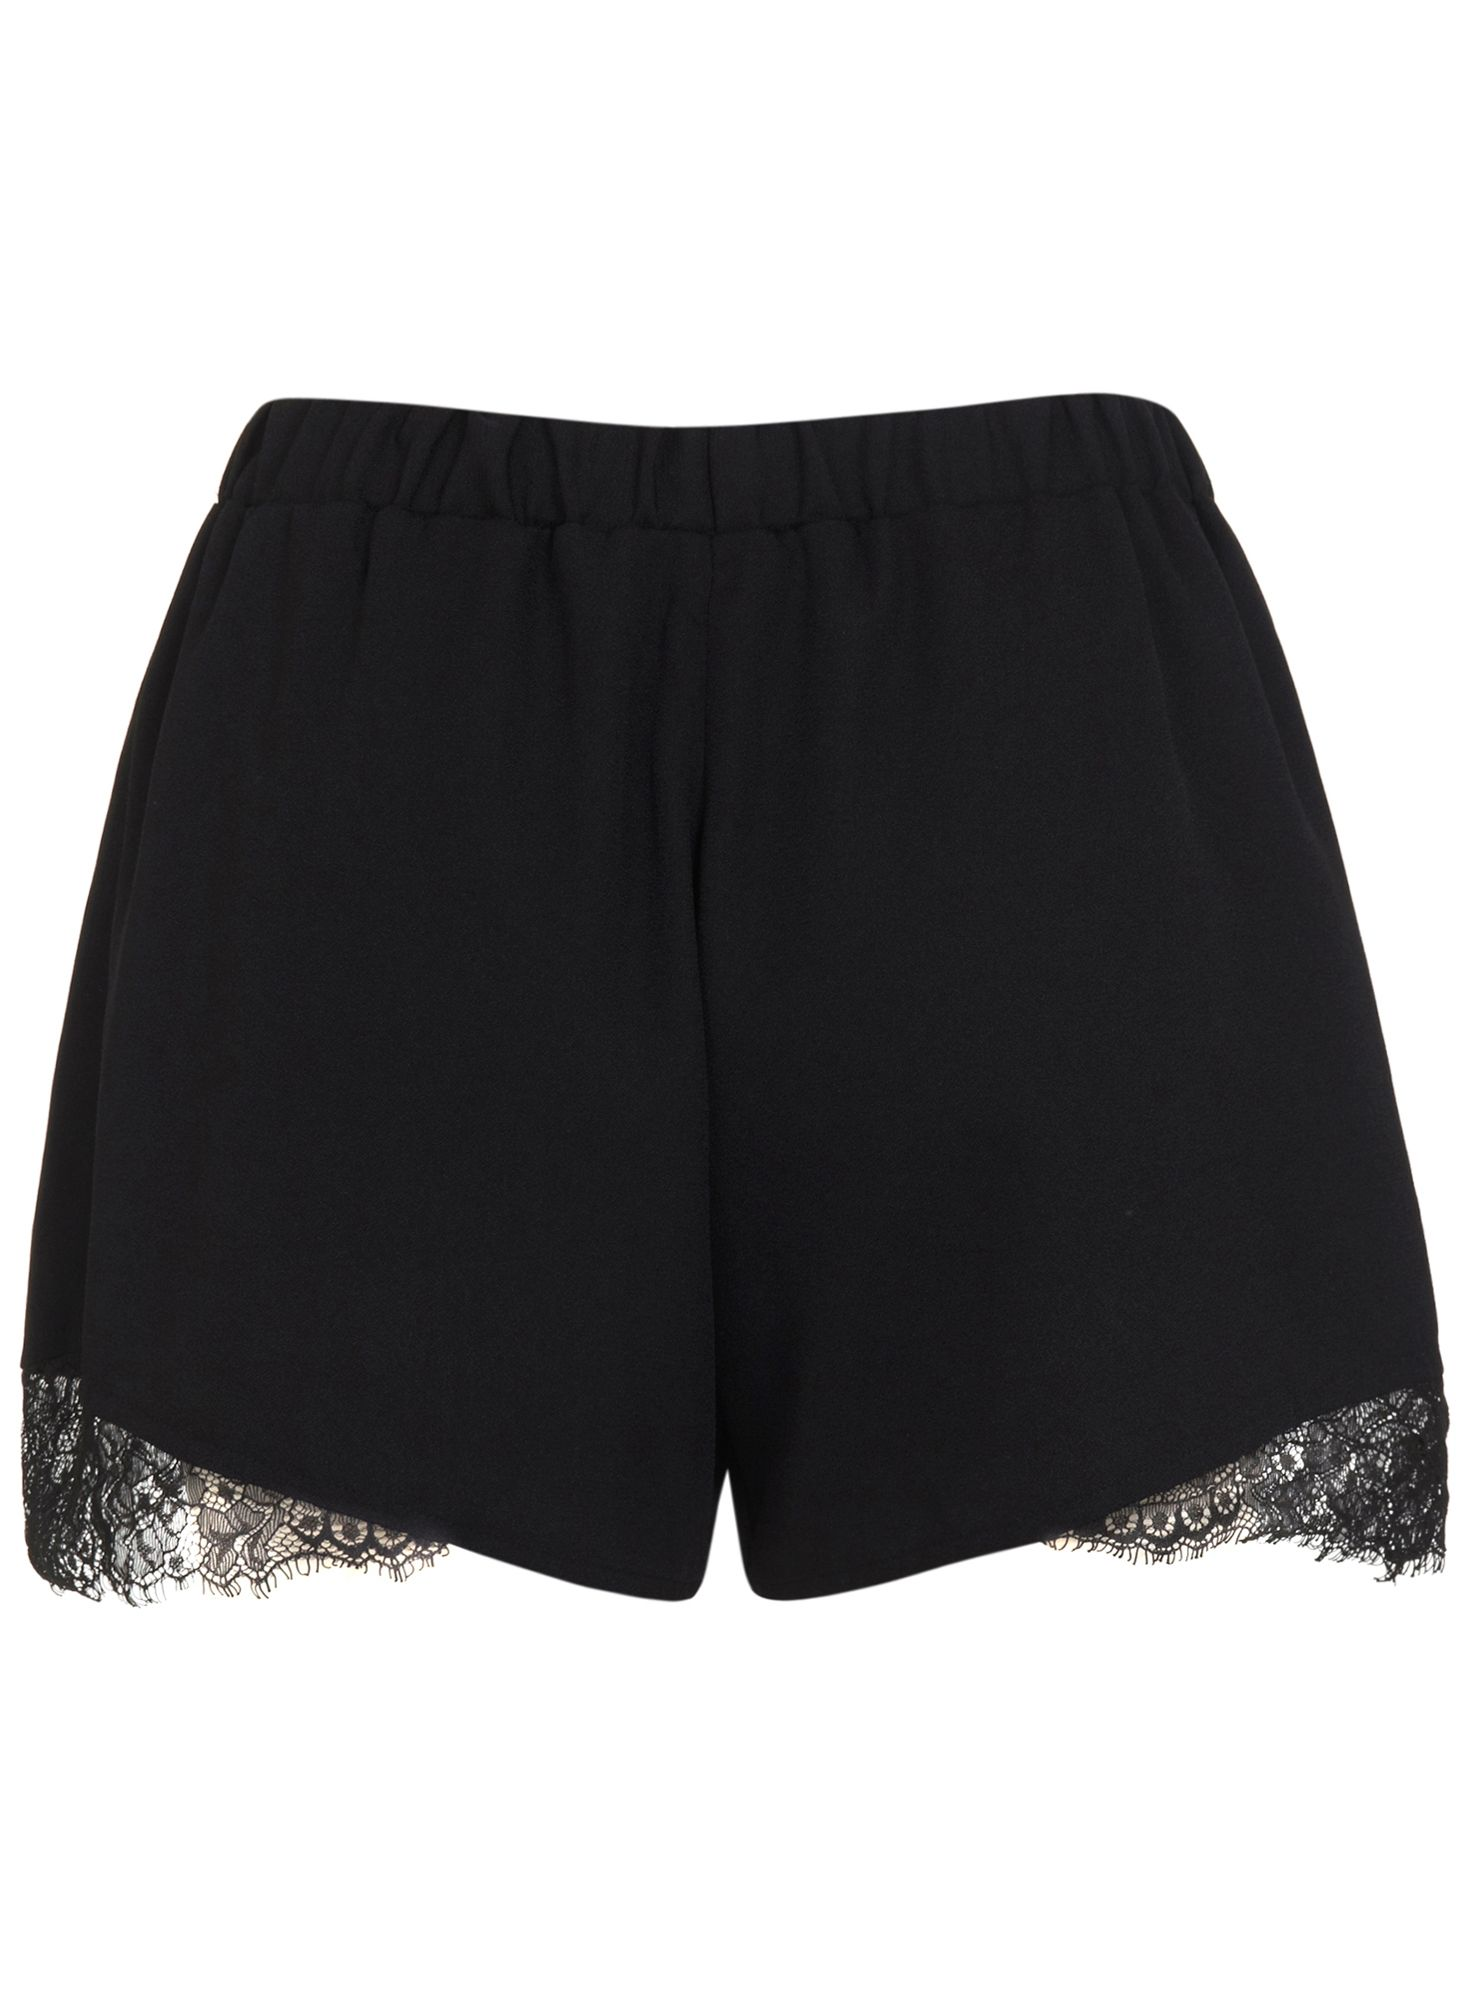 Lace black insert short